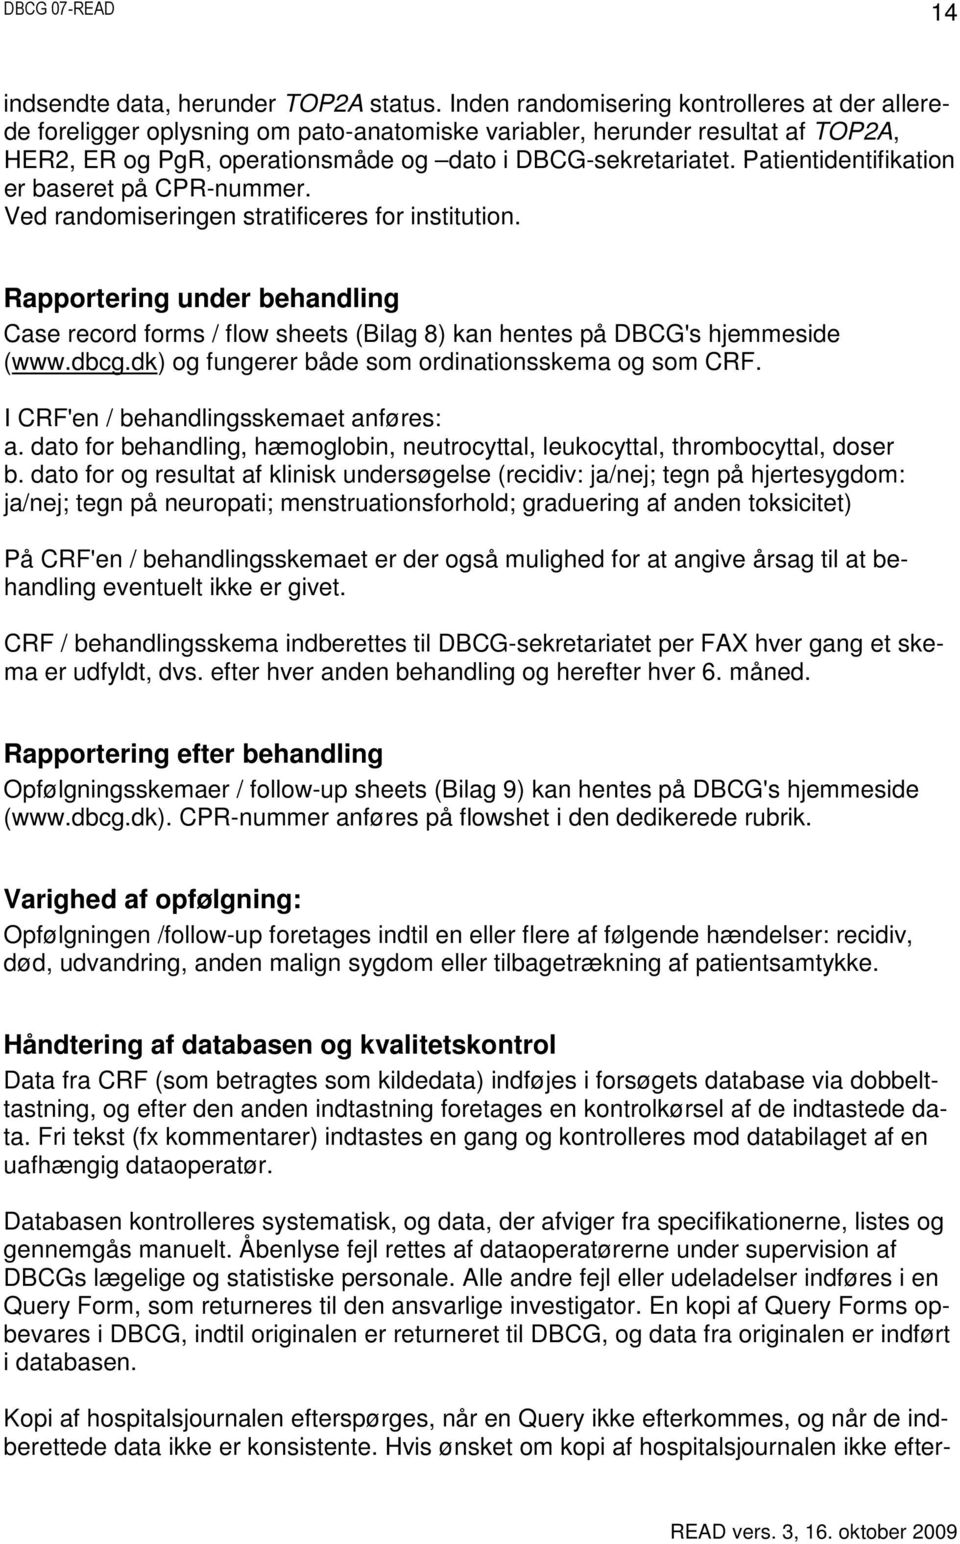 Patientidentifikation er baseret på CPR-nummer. Ved randomiseringen stratificeres for institution.